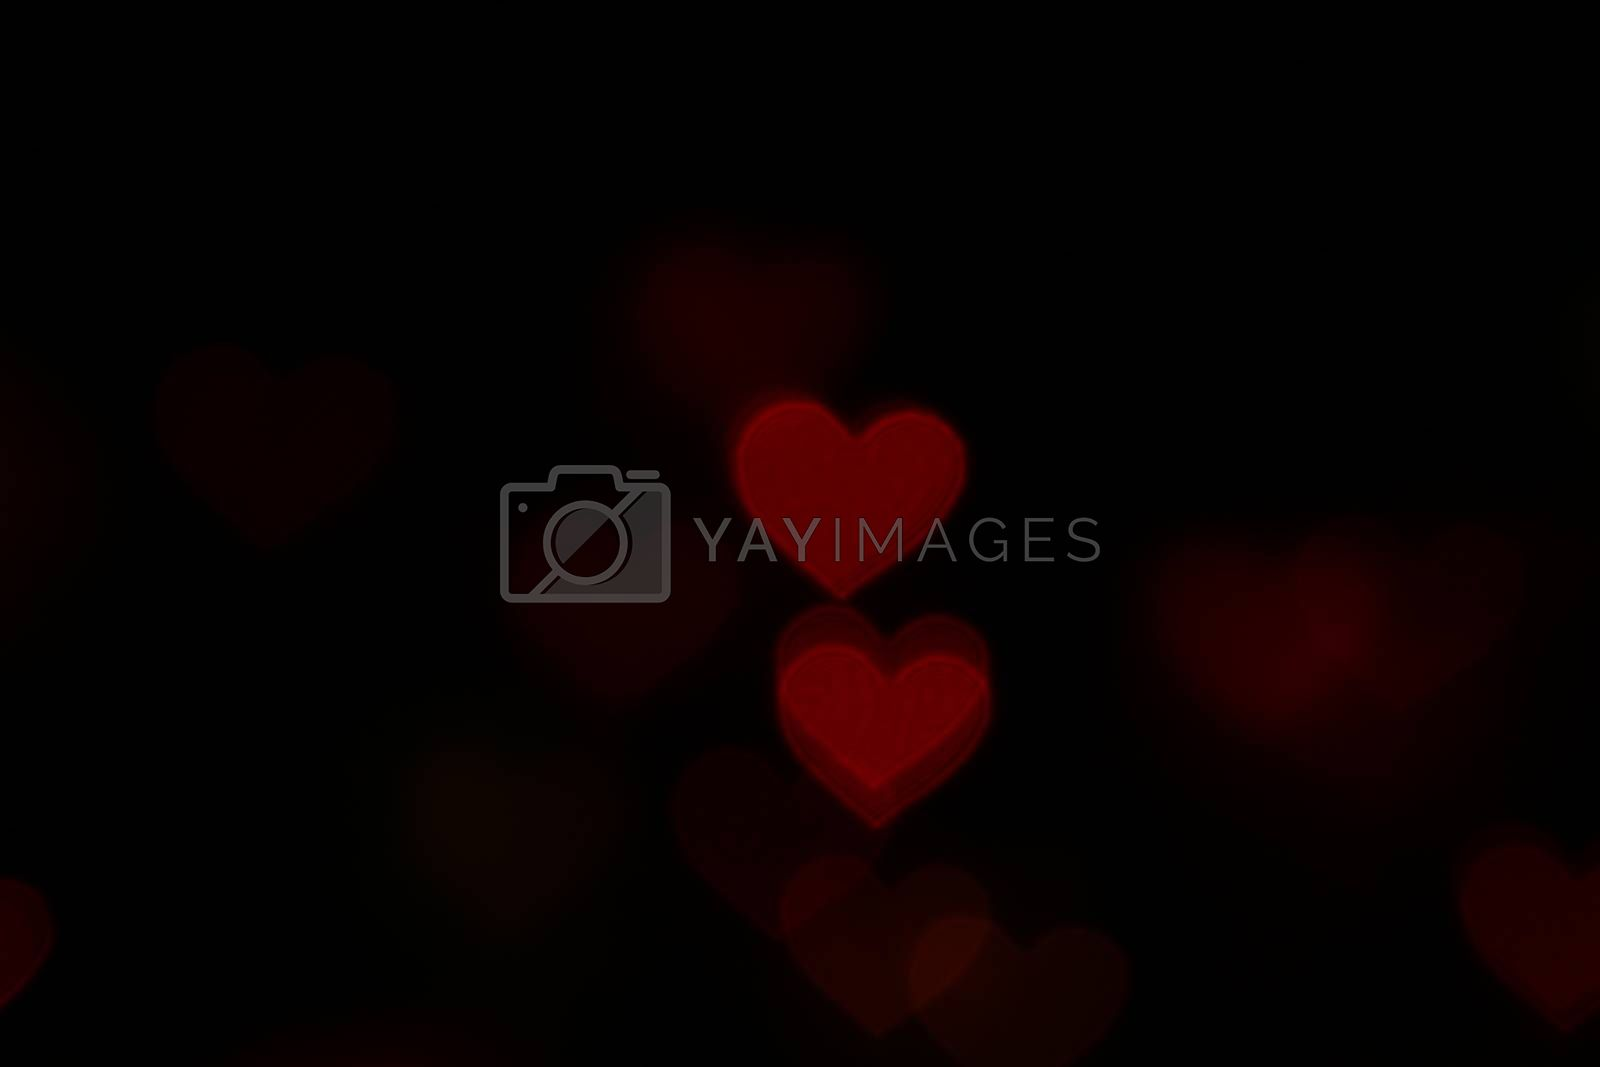 Valentine Red heart-shaped on black background Colorful lighting bokeh for decoration at night backdrop wallpaper blurred valentine, Love background, Lighting heart shaped soft night abstract